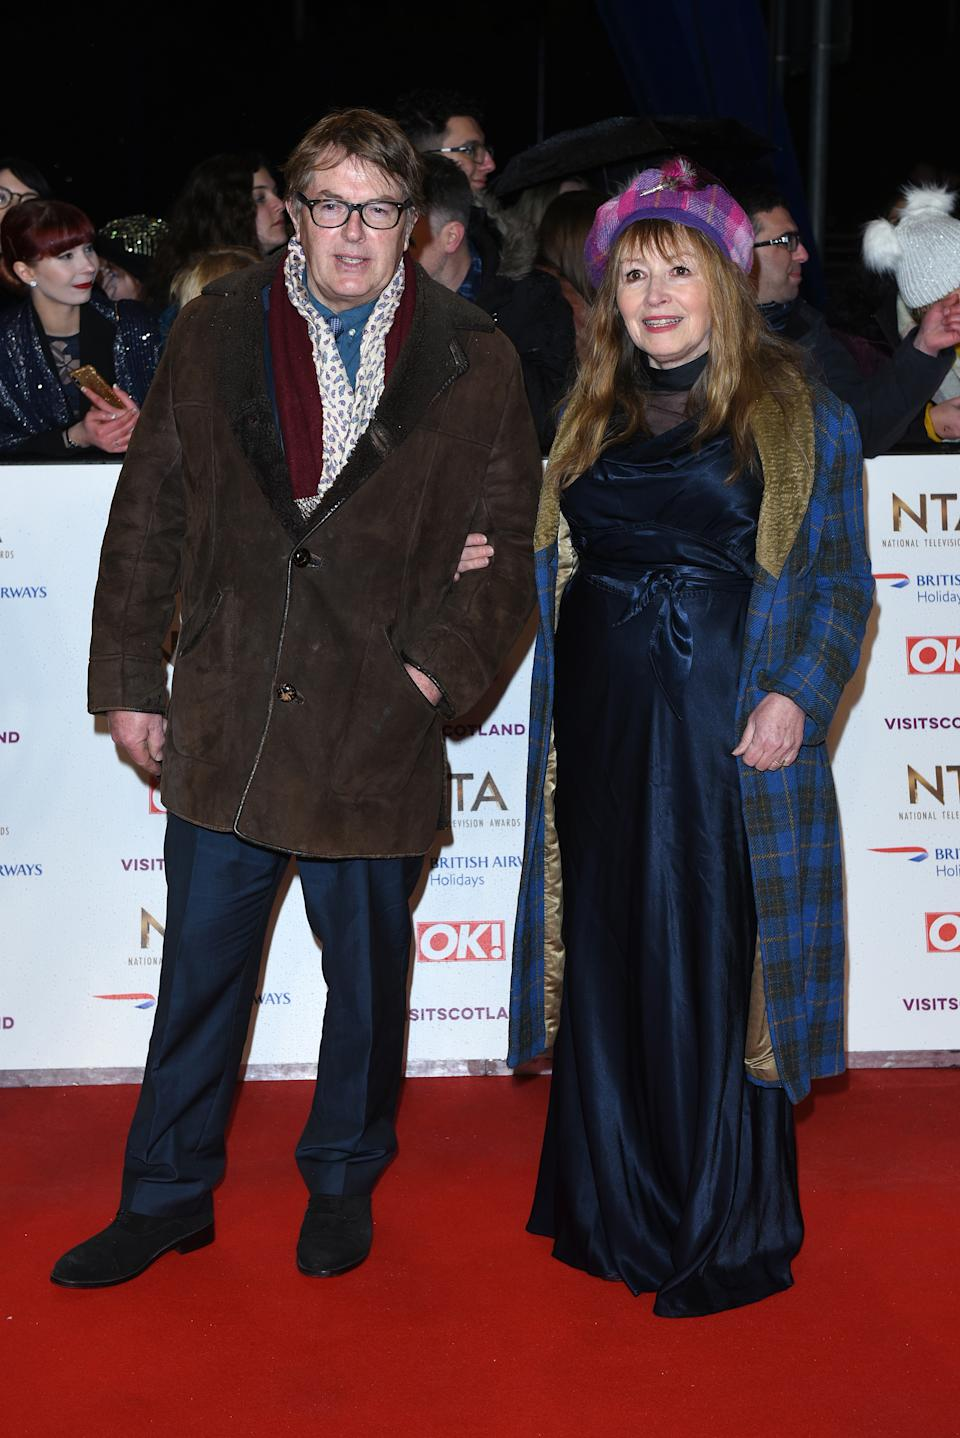 Mary Killen and Giles Wood  attend the National Television Awards held at The O2 Arena on January 22, 2019 in London, England. (Photo by Joe Maher/WireImage)